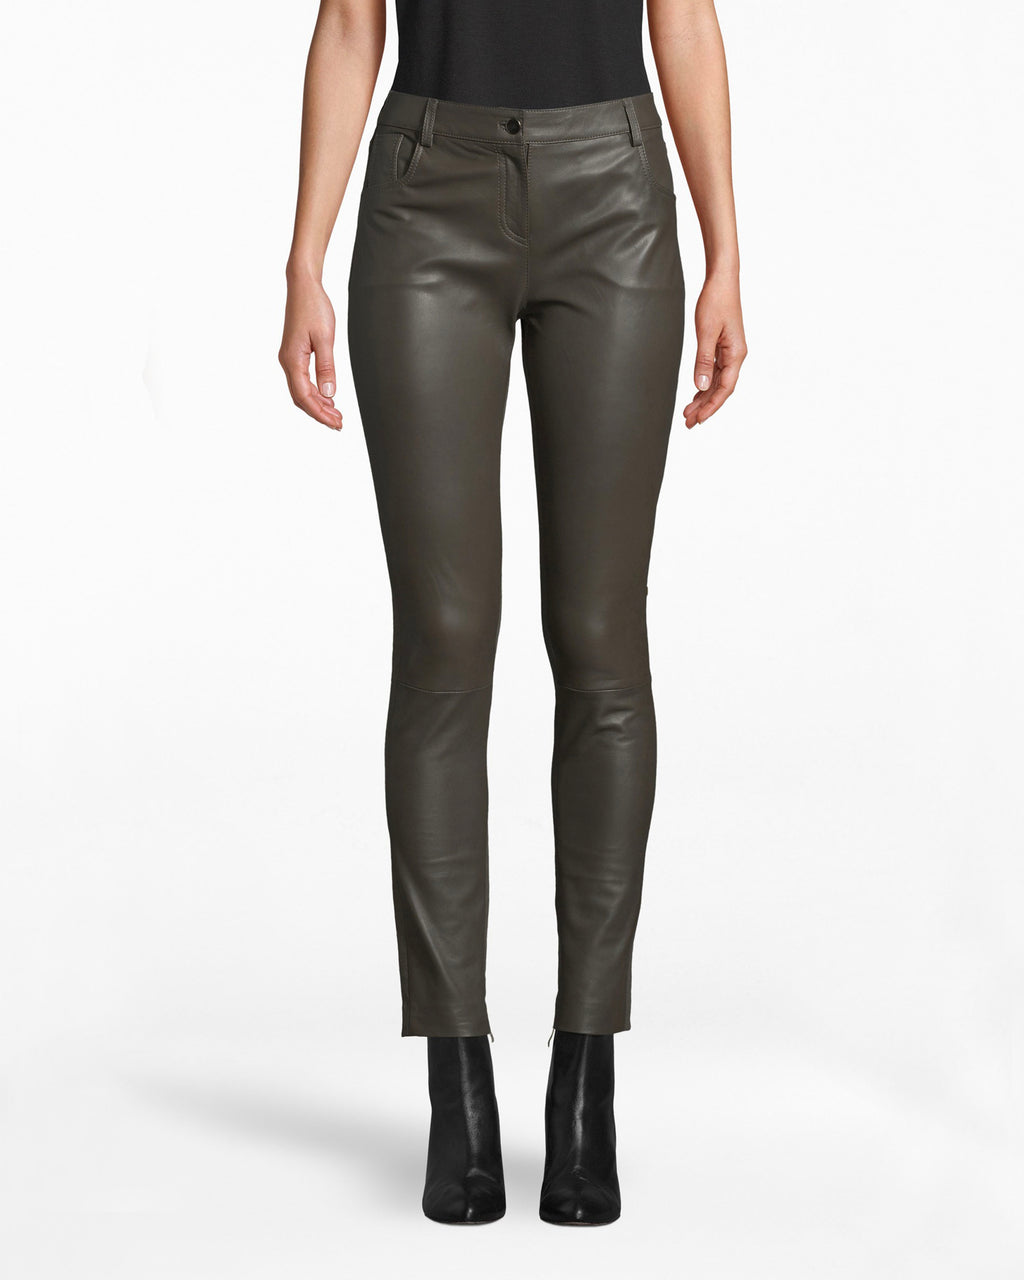 "CG10010 - LEATHER COMBO JEAN - bottoms - pants - A modern upgrade to denim. These Leather Combo Jeans have a skinny fitting leg while elevating your ""t-shirt and jeans"" vibe. They hit just above the ankle, so wear booties or heels."